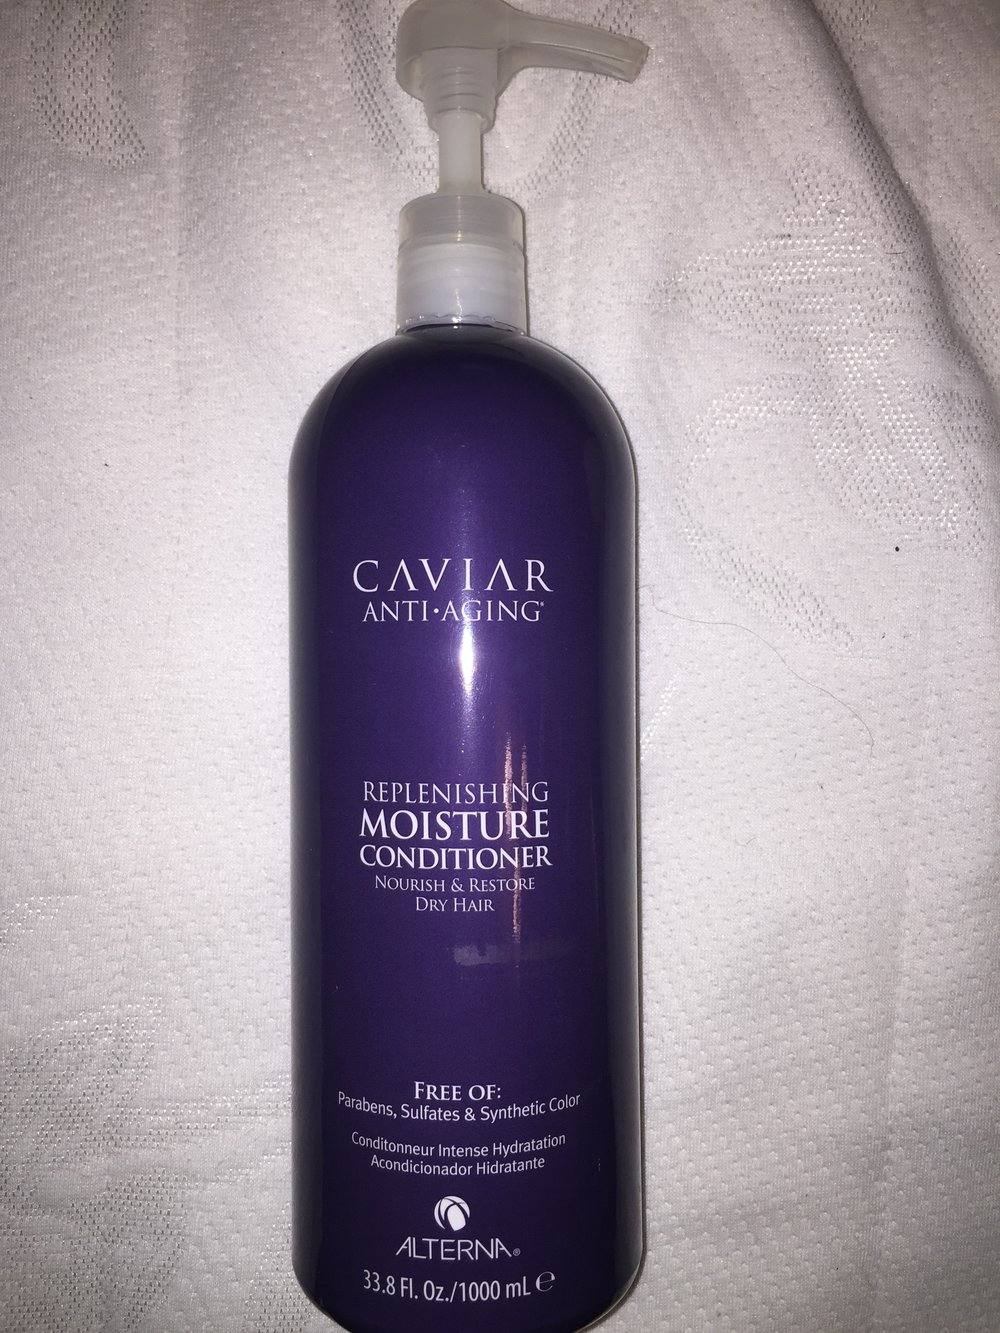 Alterna Caviar Moisturizing Conditioner